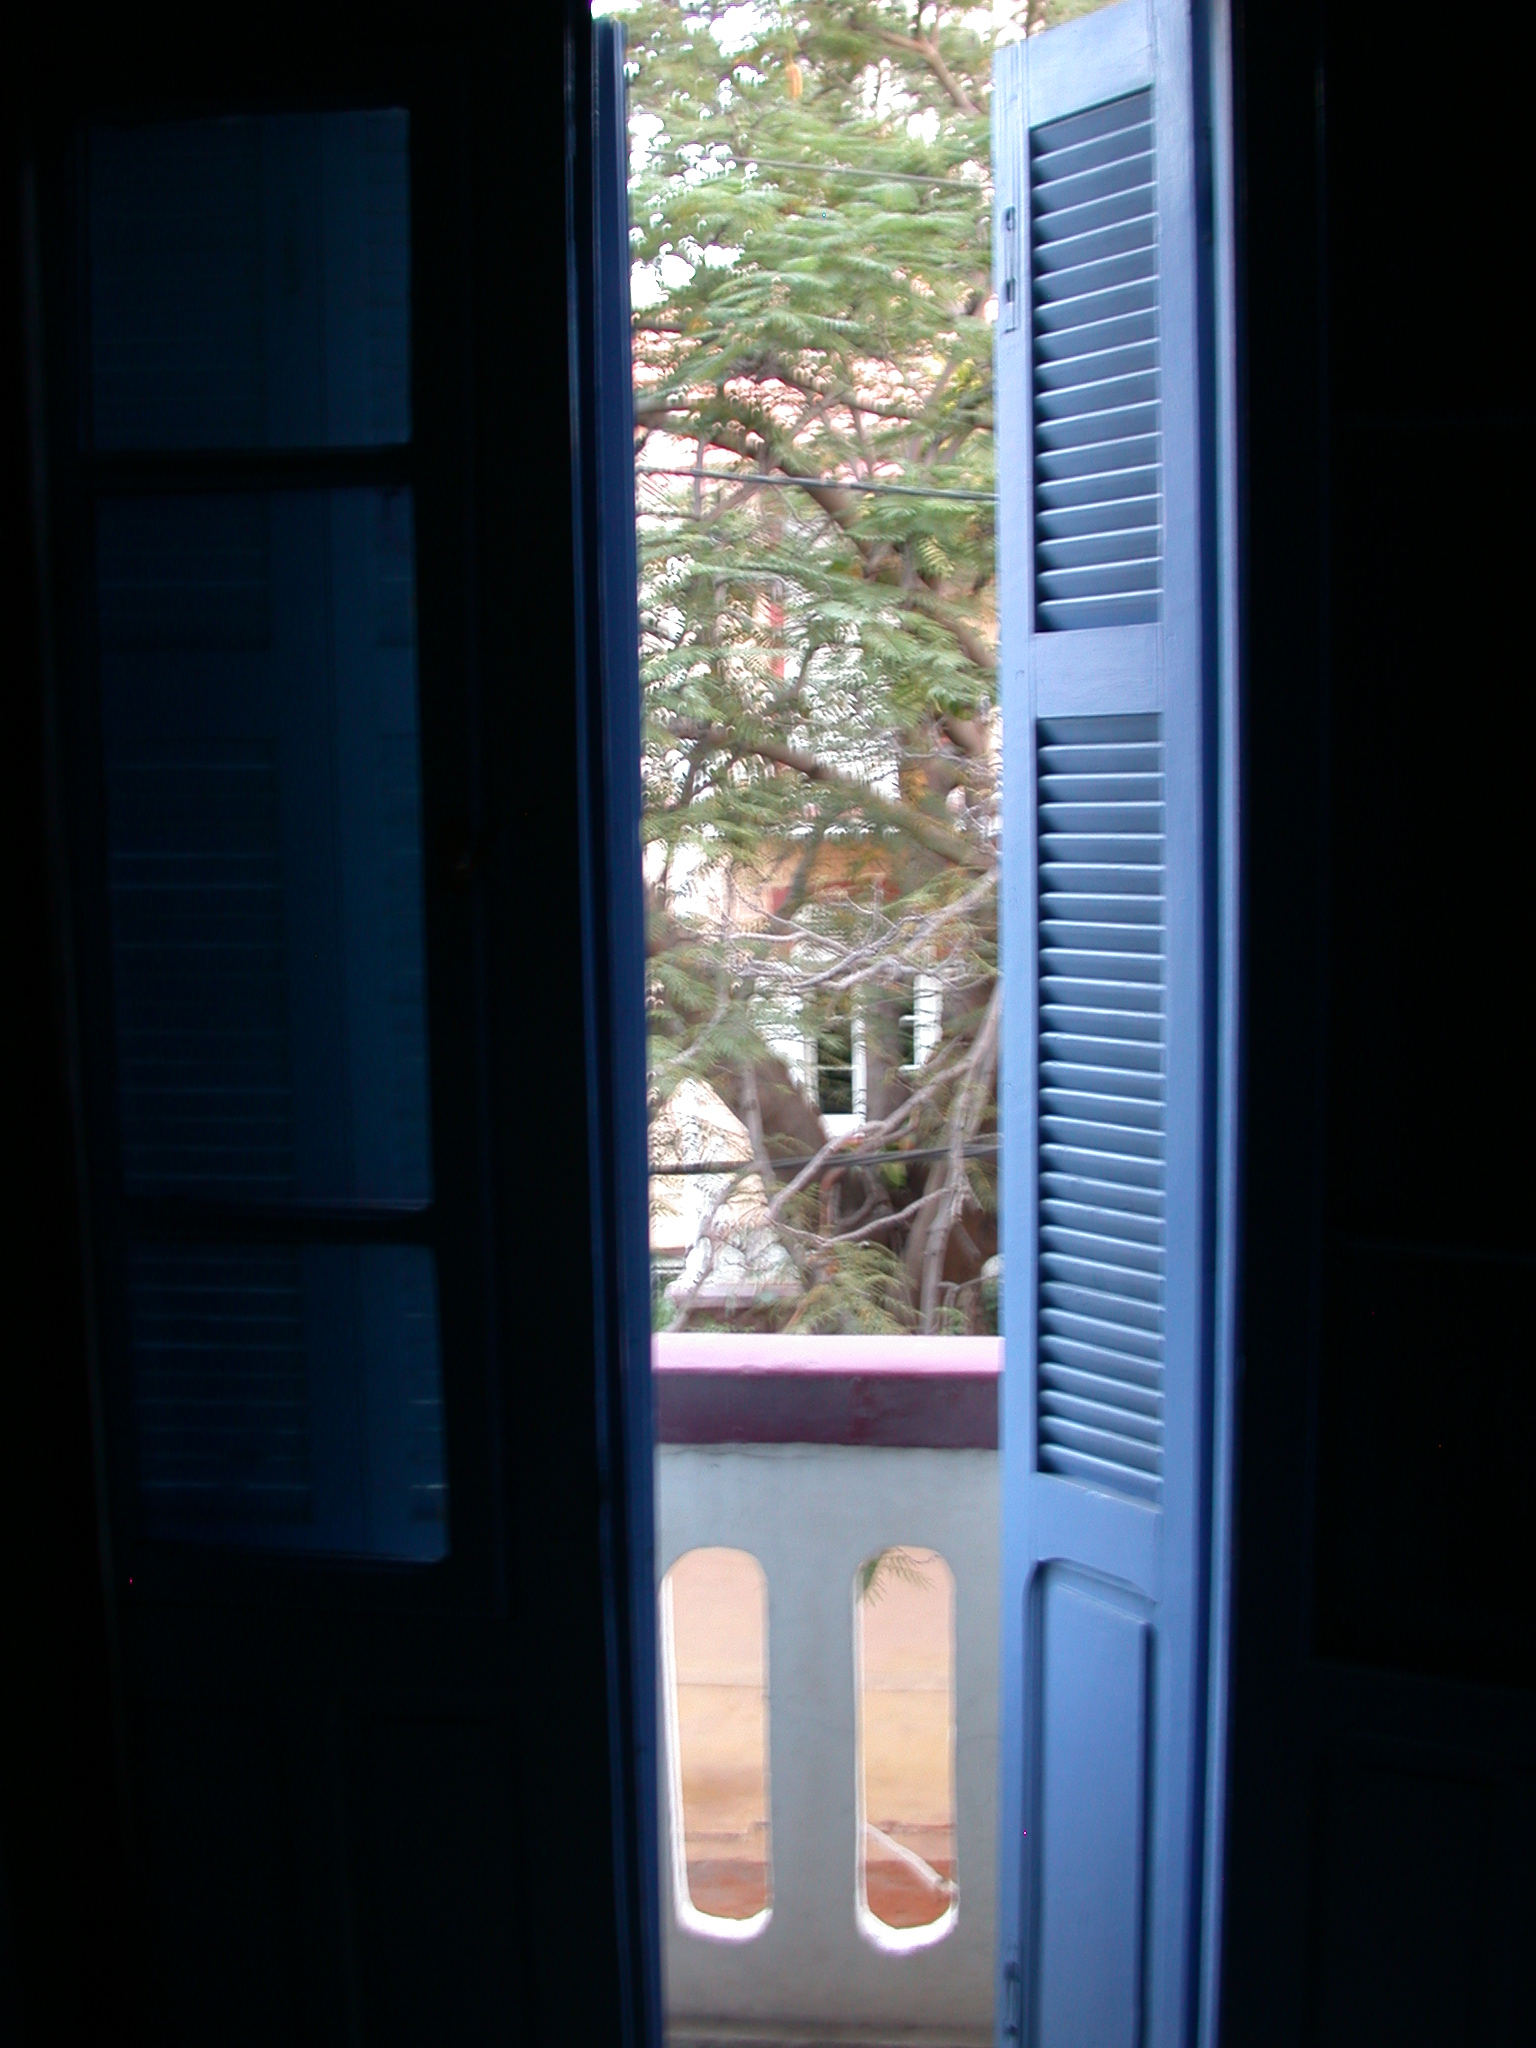 Window of My Second Room, Hotel Oceanic, Dakar, Senegal